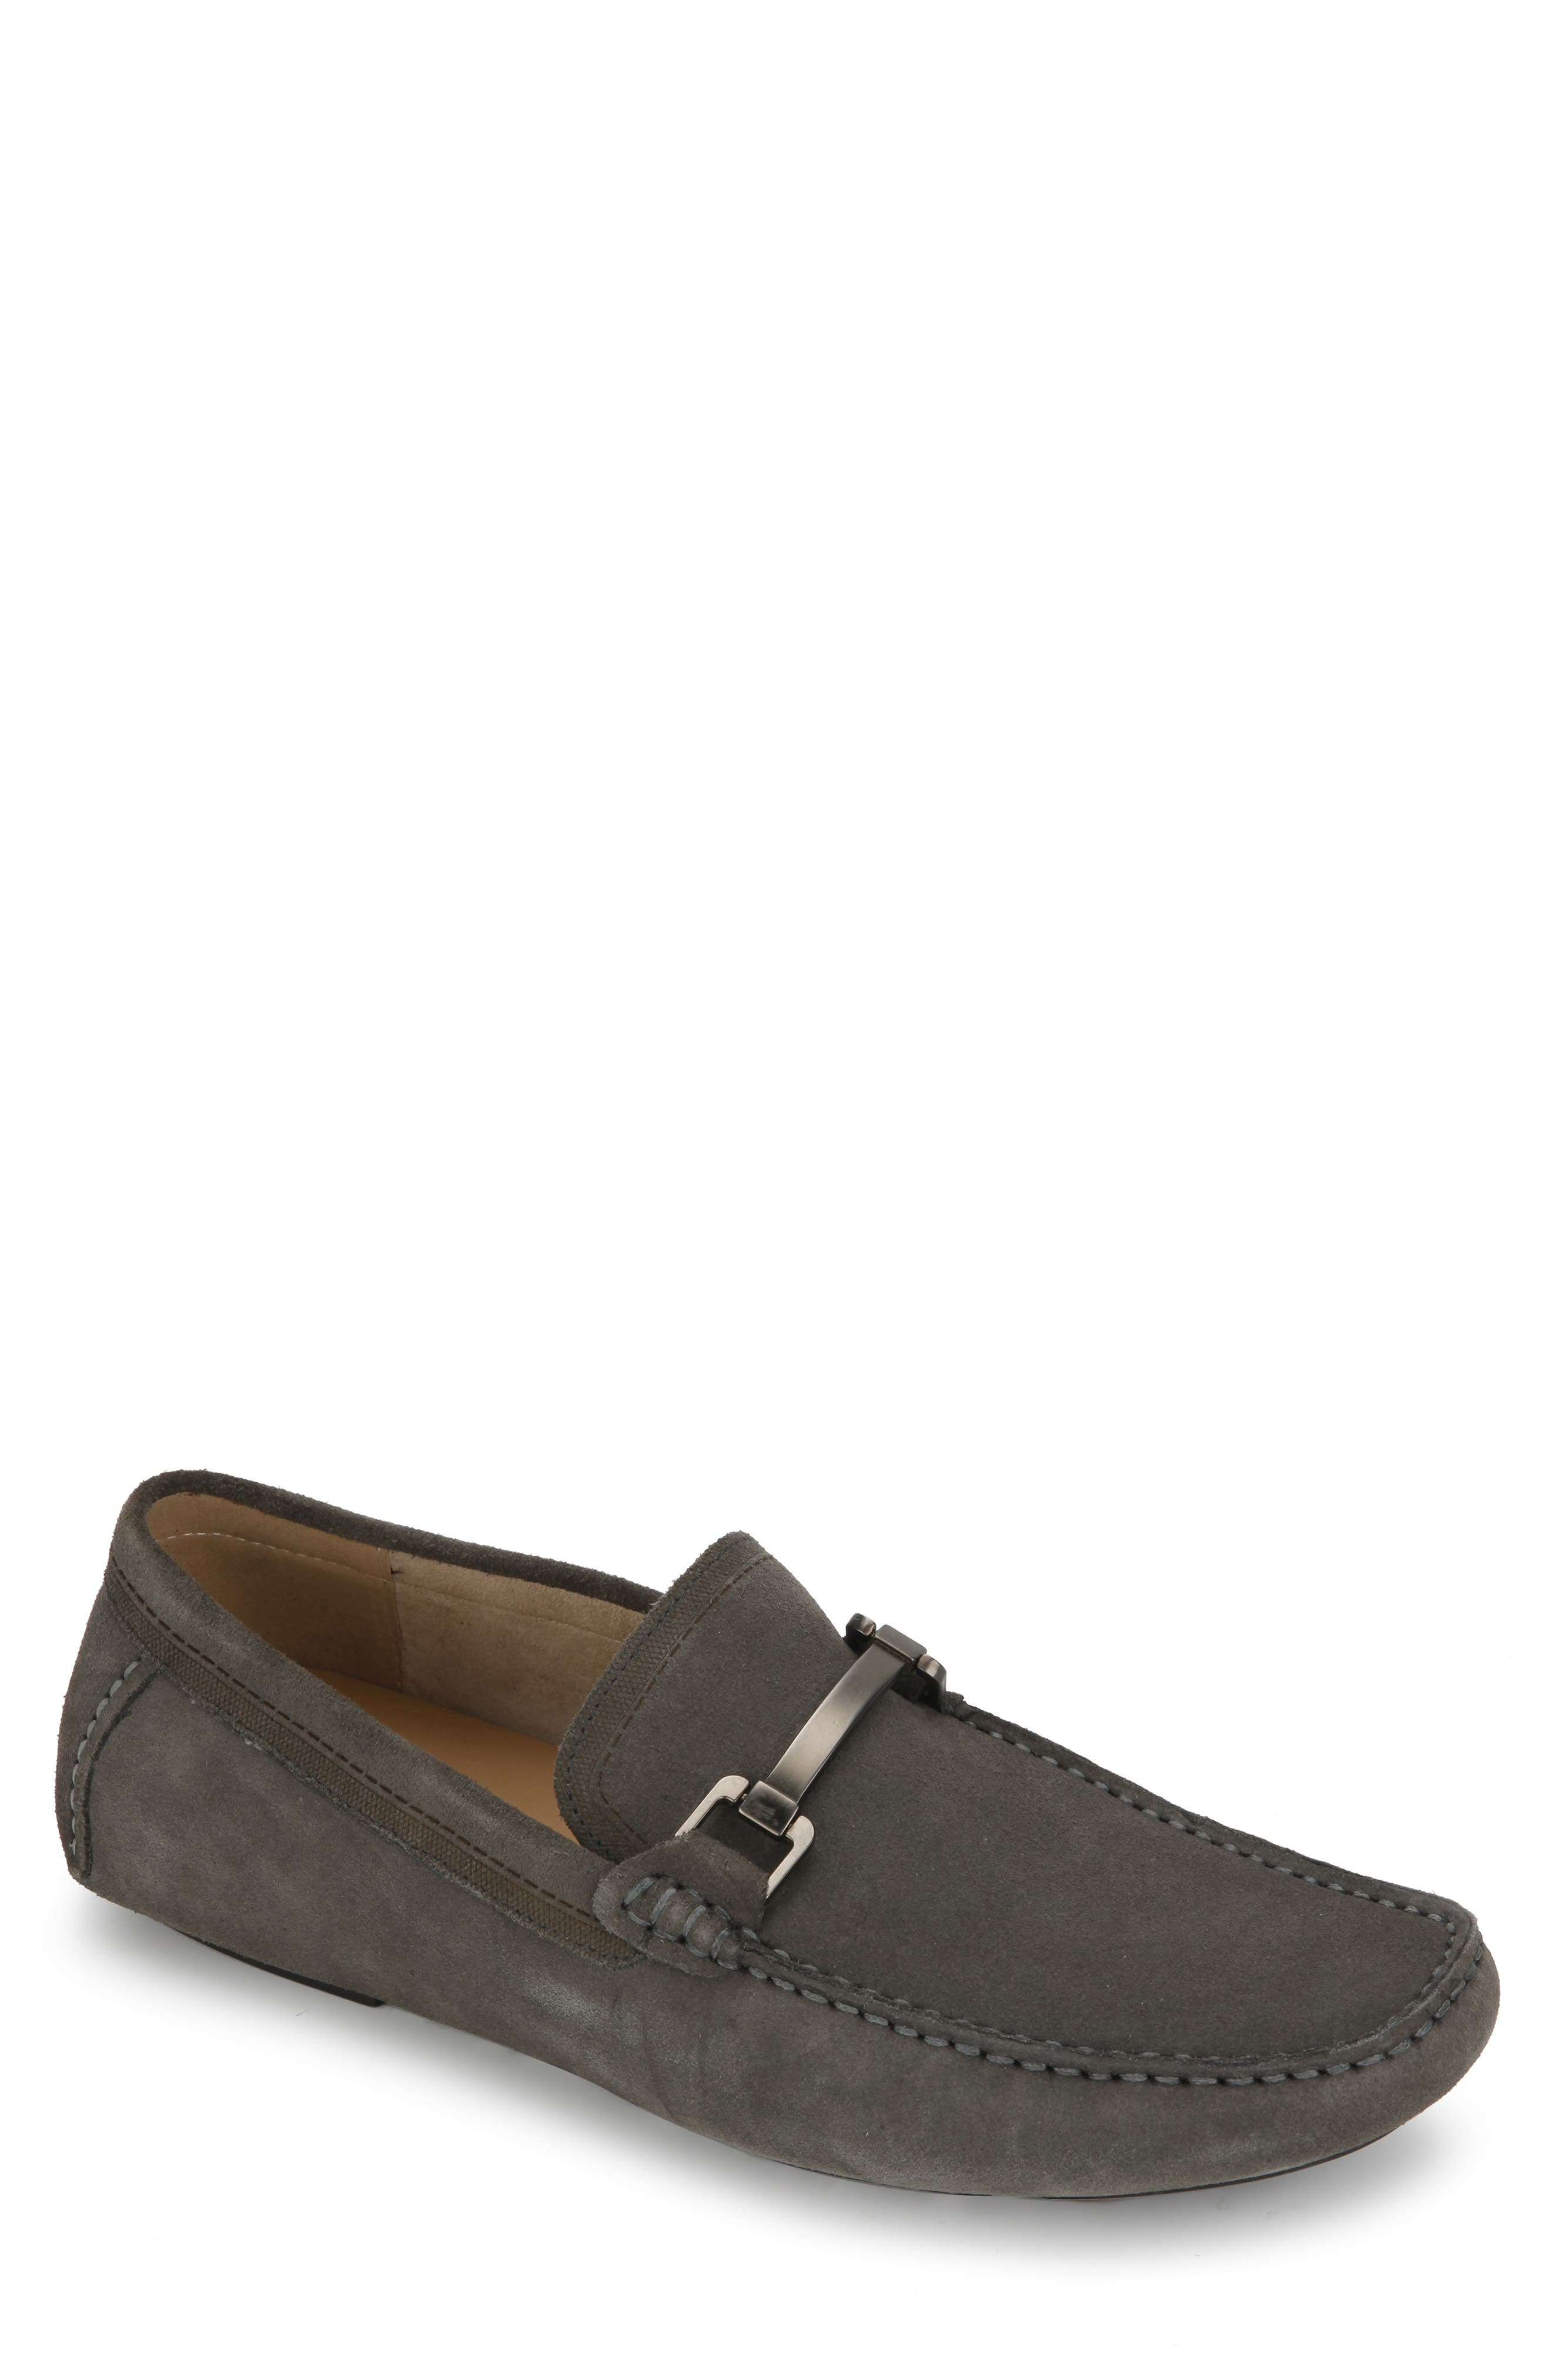 REACTION KENNETH COLE Sound Driving Shoe, Main, color, GREY